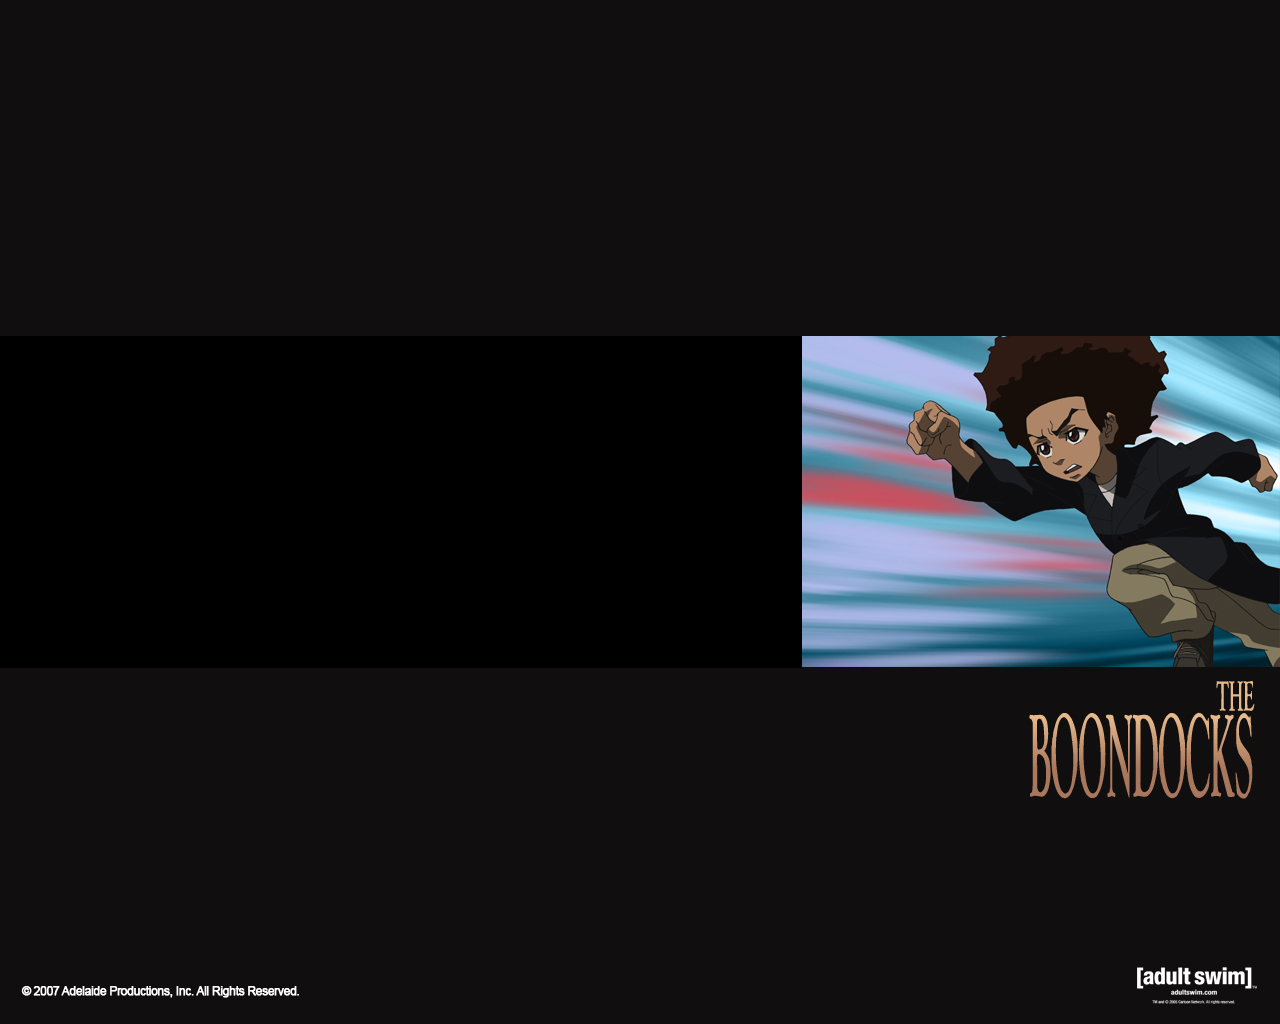 The Boondocks TheWallpapers Desktop Wallpapers for HD 1280x1024